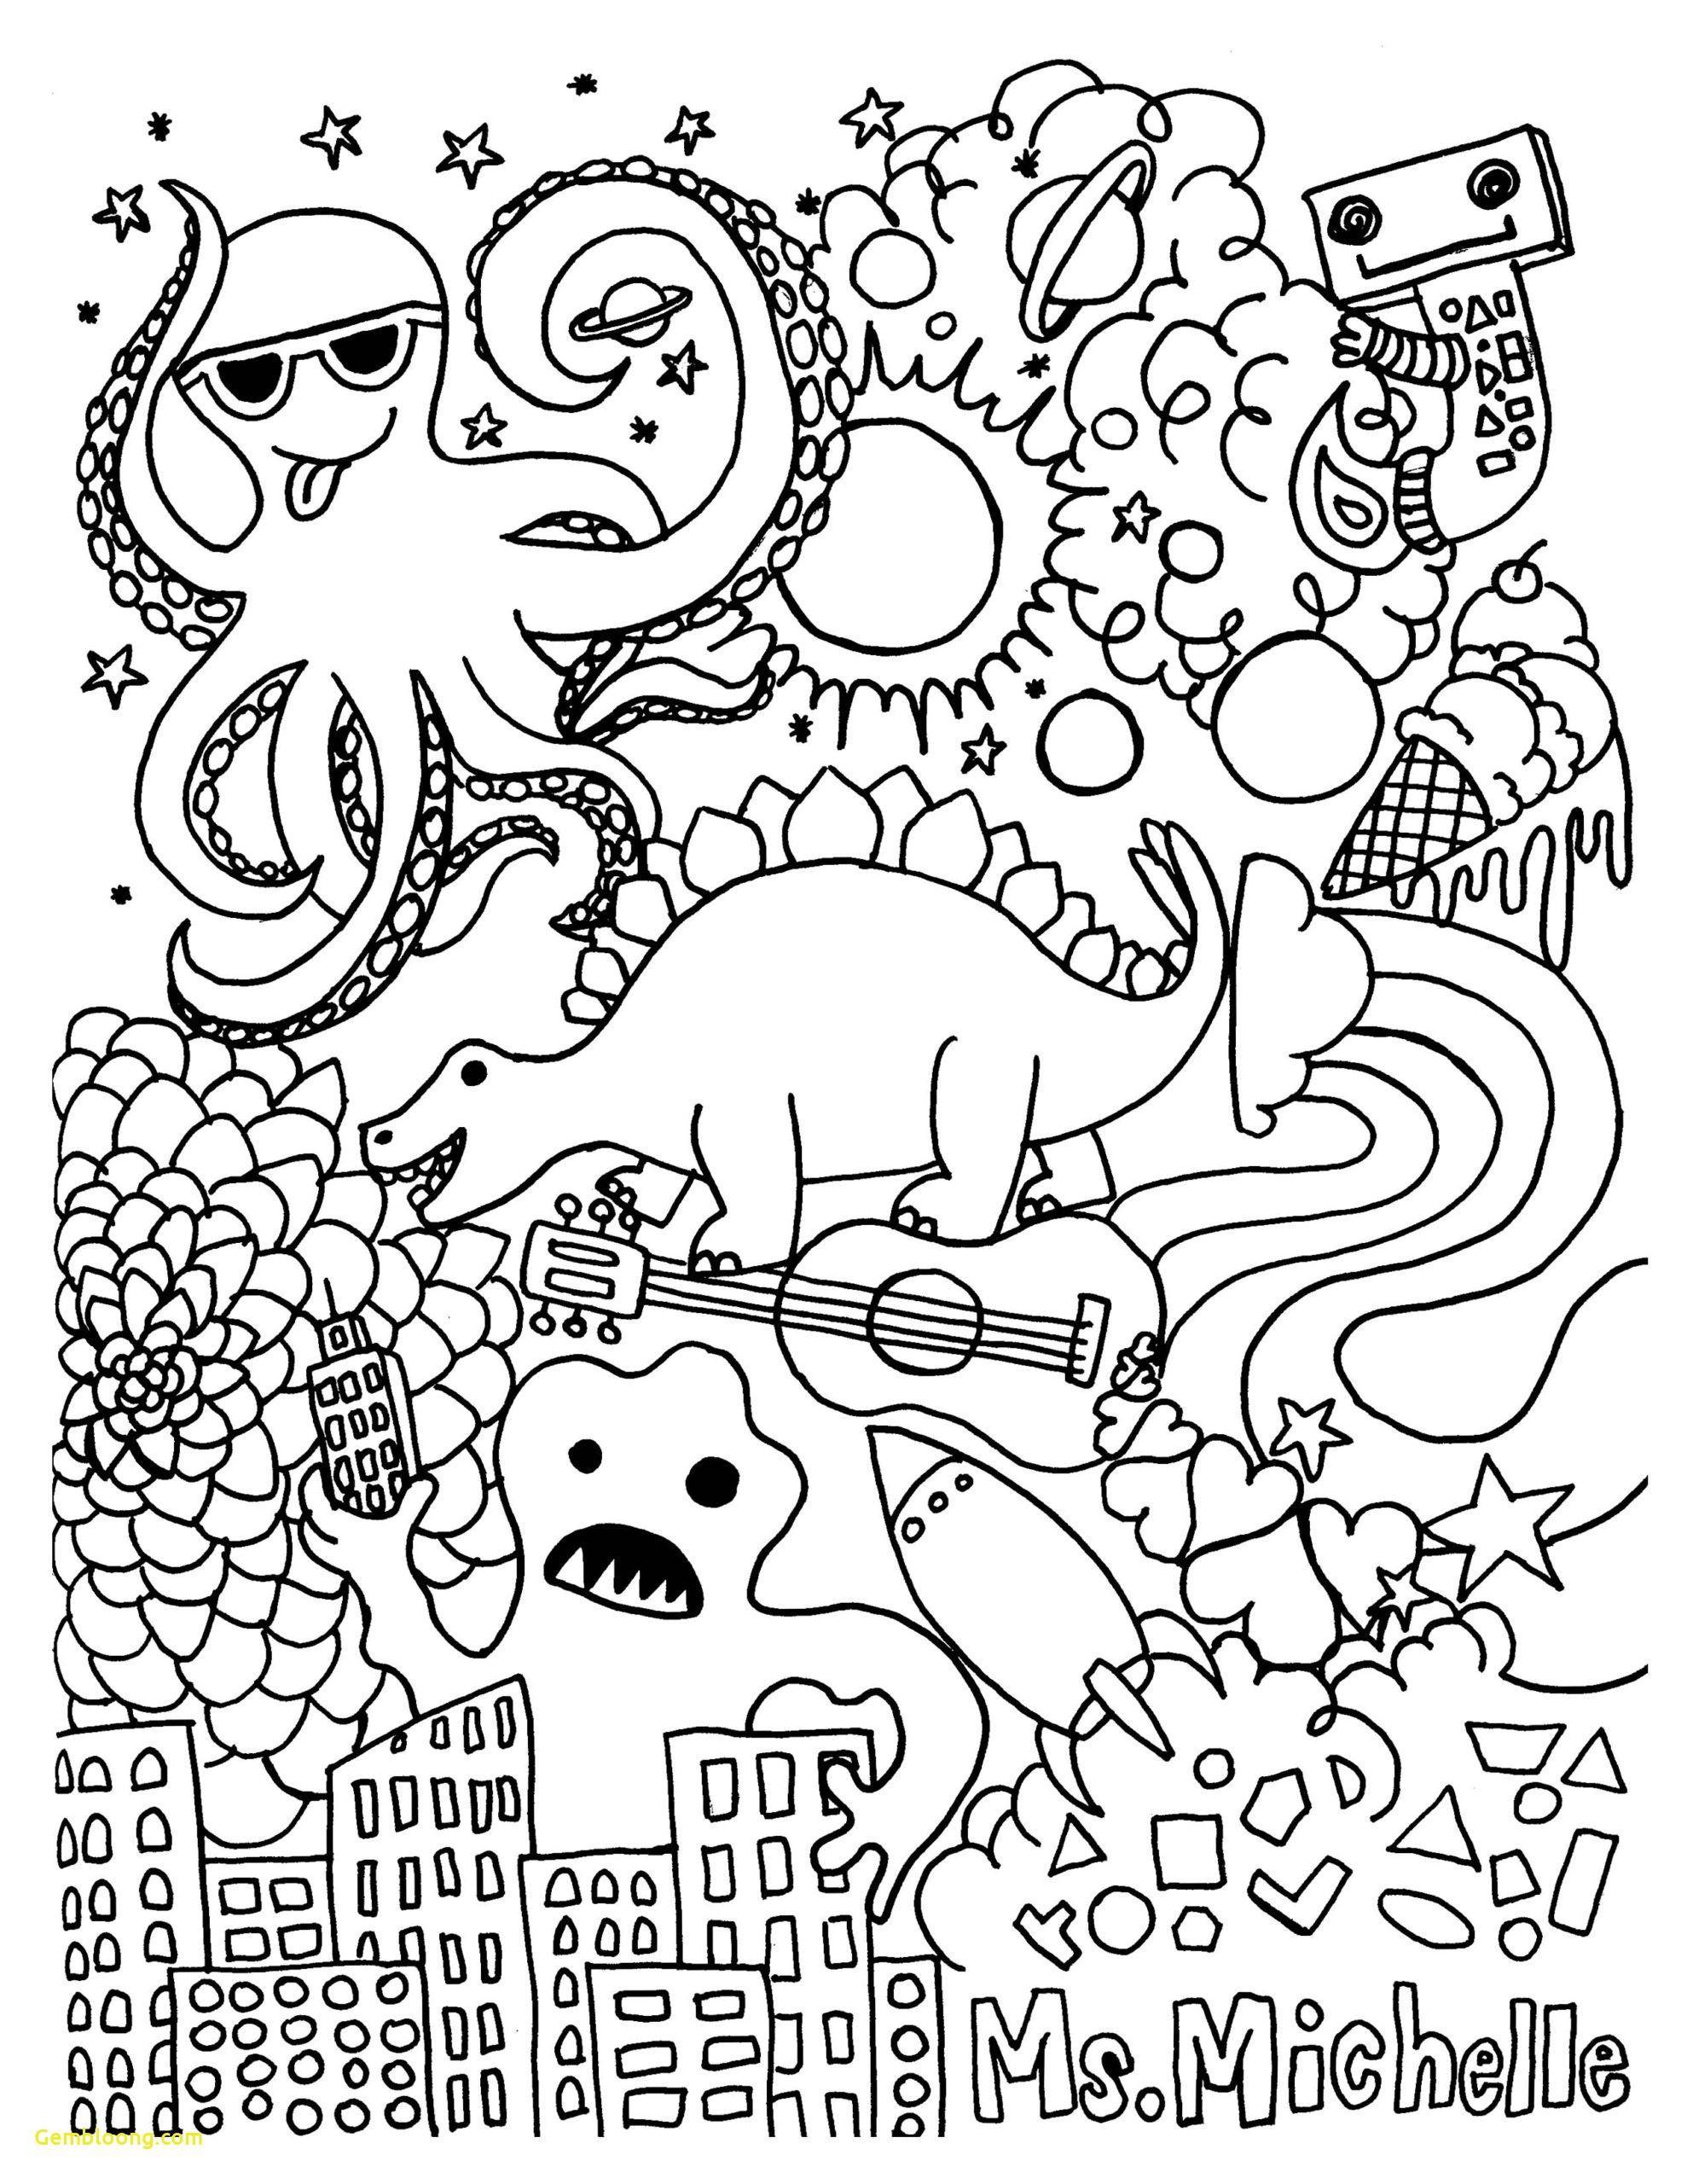 New 3rd Grade Addition Worksheets #Worksheet #Printable   Coloring pages  inspirational [ 2560 x 1978 Pixel ]